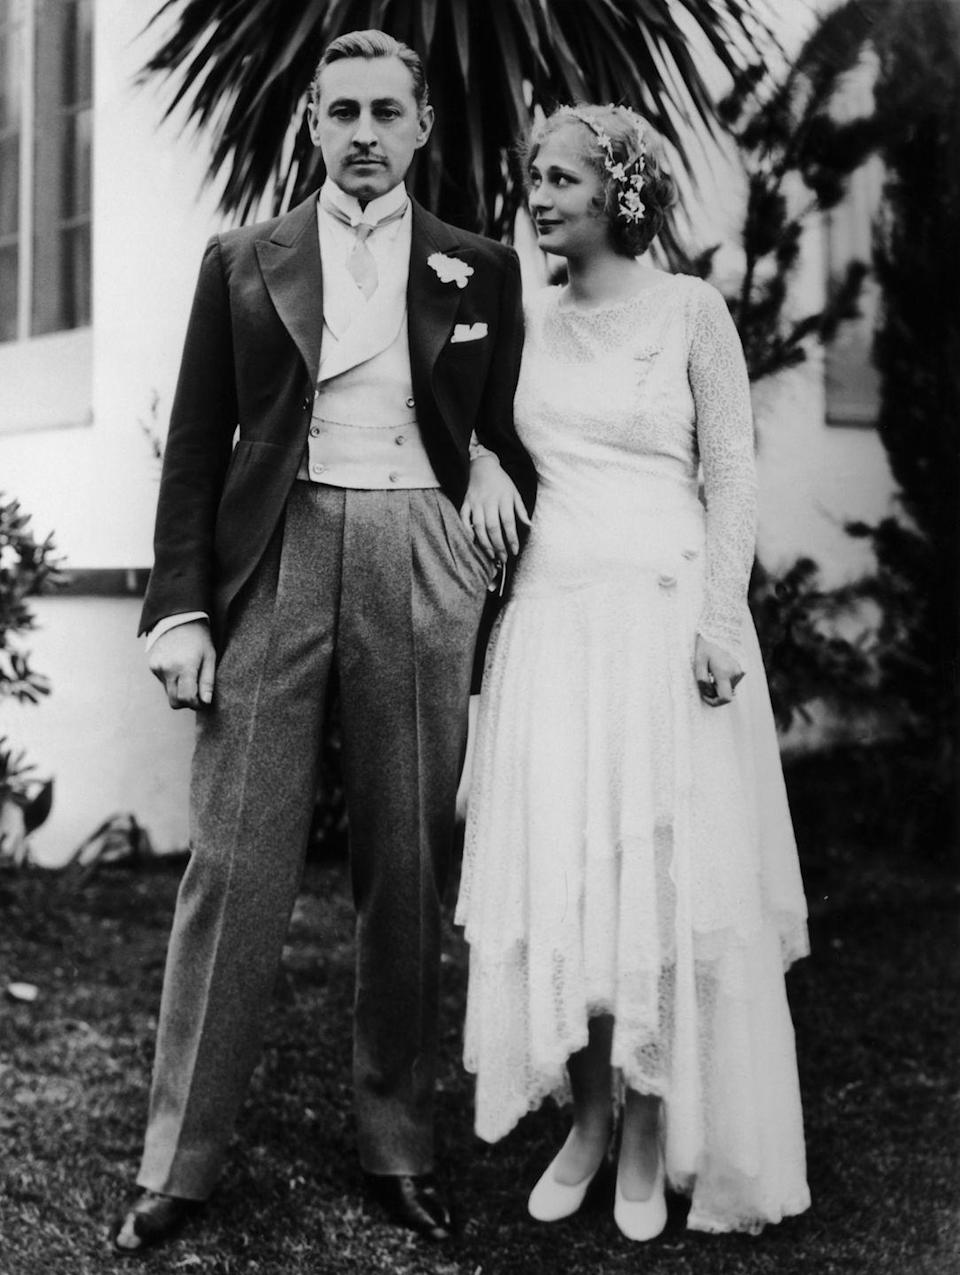 """<p>Drew Barrymore comes from a long line of Hollywood stars and this is her grandfather, acclaimed actor John Barrymore, with her grandmother, his third wife Dolores Costello, in 1928. Some of Barrymore's most well-known films include <em>Grand Hotel</em> (1932), <em>Twentieth Century</em> (1934) and <em>Midnight</em> (1939), which have been inducted into the <a href=""""https://www.loc.gov/programs/national-film-preservation-board/film-registry/complete-national-film-registry-listing/"""" rel=""""nofollow noopener"""" target=""""_blank"""" data-ylk=""""slk:National Film Registry"""" class=""""link rapid-noclick-resp"""">National Film Registry</a>. Dolores was a well-known silent film actress in her own right when the two were married; she was his co-star in <em>The Sea Beast</em>. </p><p>According to <a href=""""https://www.nytimes.com/1979/03/03/archives/dolores-costello-73-film-star-wife-of-barrymore-educated-by-tutor.html"""" rel=""""nofollow noopener"""" target=""""_blank"""" data-ylk=""""slk:her New York Times obituary"""" class=""""link rapid-noclick-resp"""">her <em>New York Times</em> obituary</a>, Barrymore said of Costello: """"I have just seen the most beautiful woman in the world. I shall not rest or eat until I have seen her again."""" The two spent their honeymoon on his yacht, visiting Panama, the Galapagos Islands and Ecuador. They hunted alligators and mammoth lizards and explored wild regions of Central America before returning to Hollywood and moving into a hilltop mansion in Beverly Hills.</p>"""